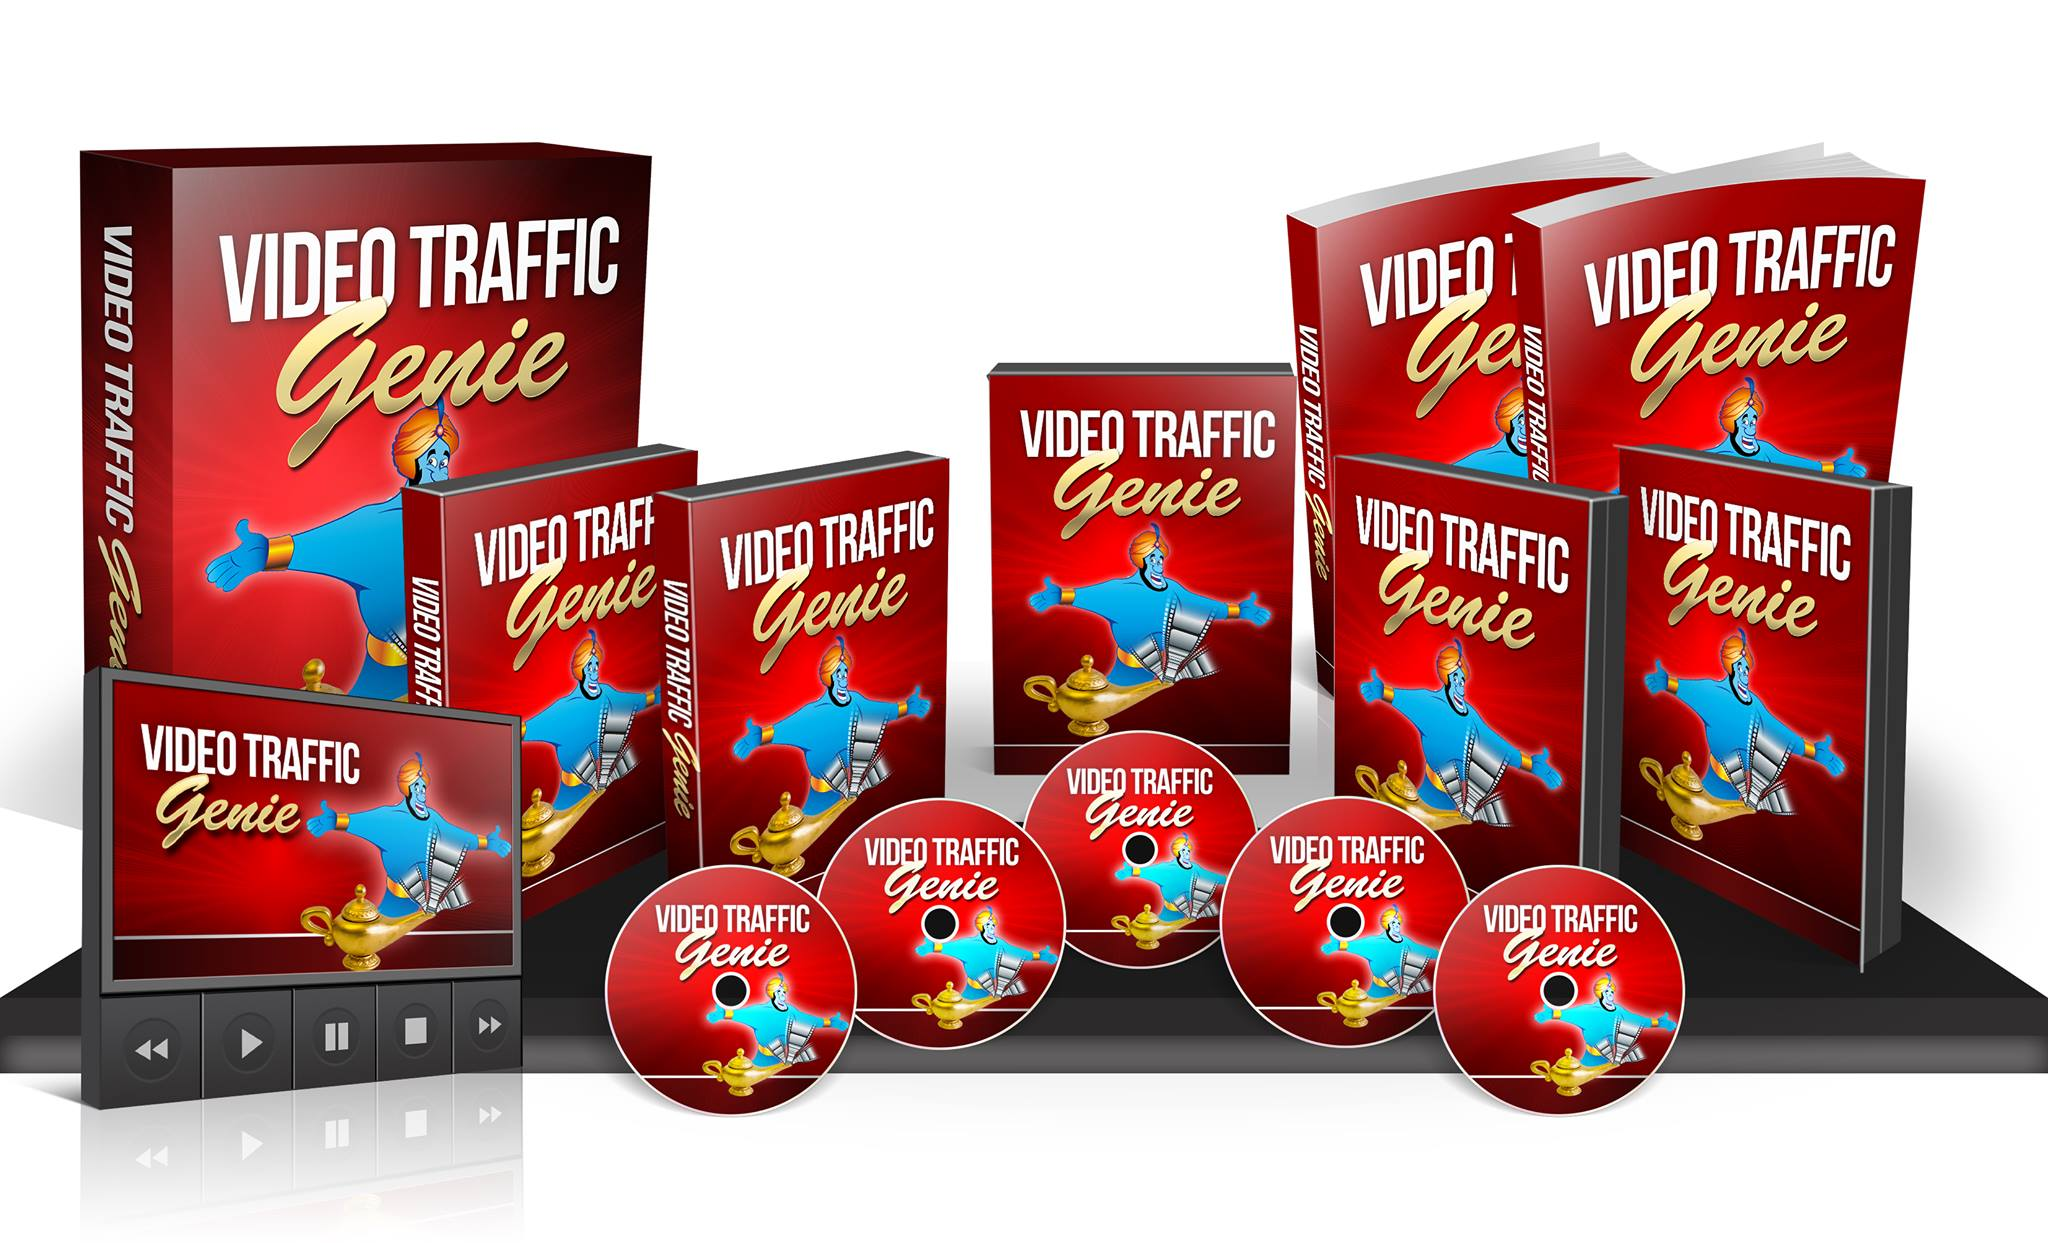 Joshua Zamora – Video Traffic Genie